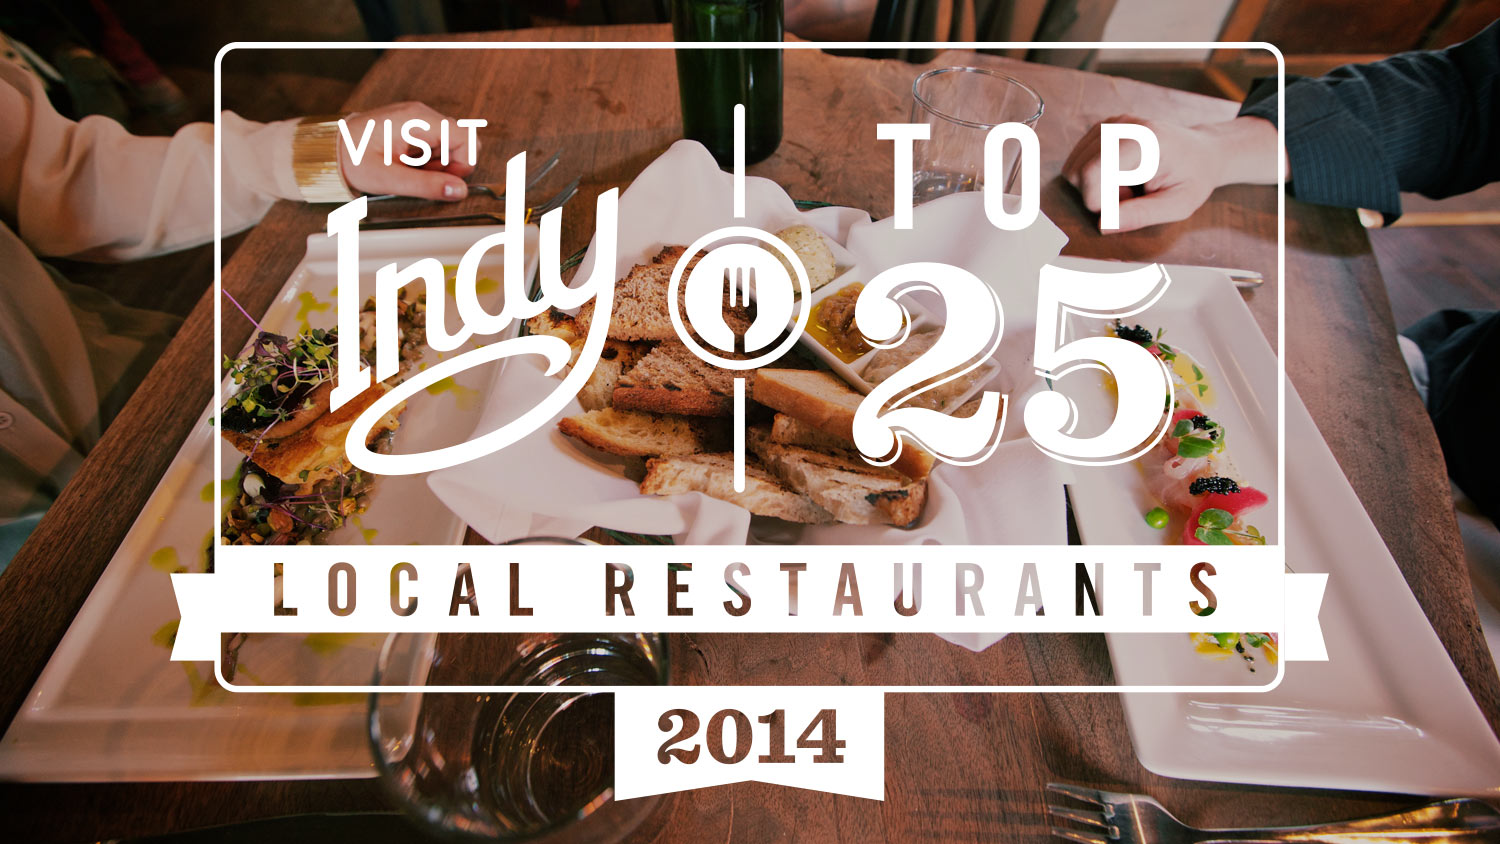 Top 25 local restaurants 2014